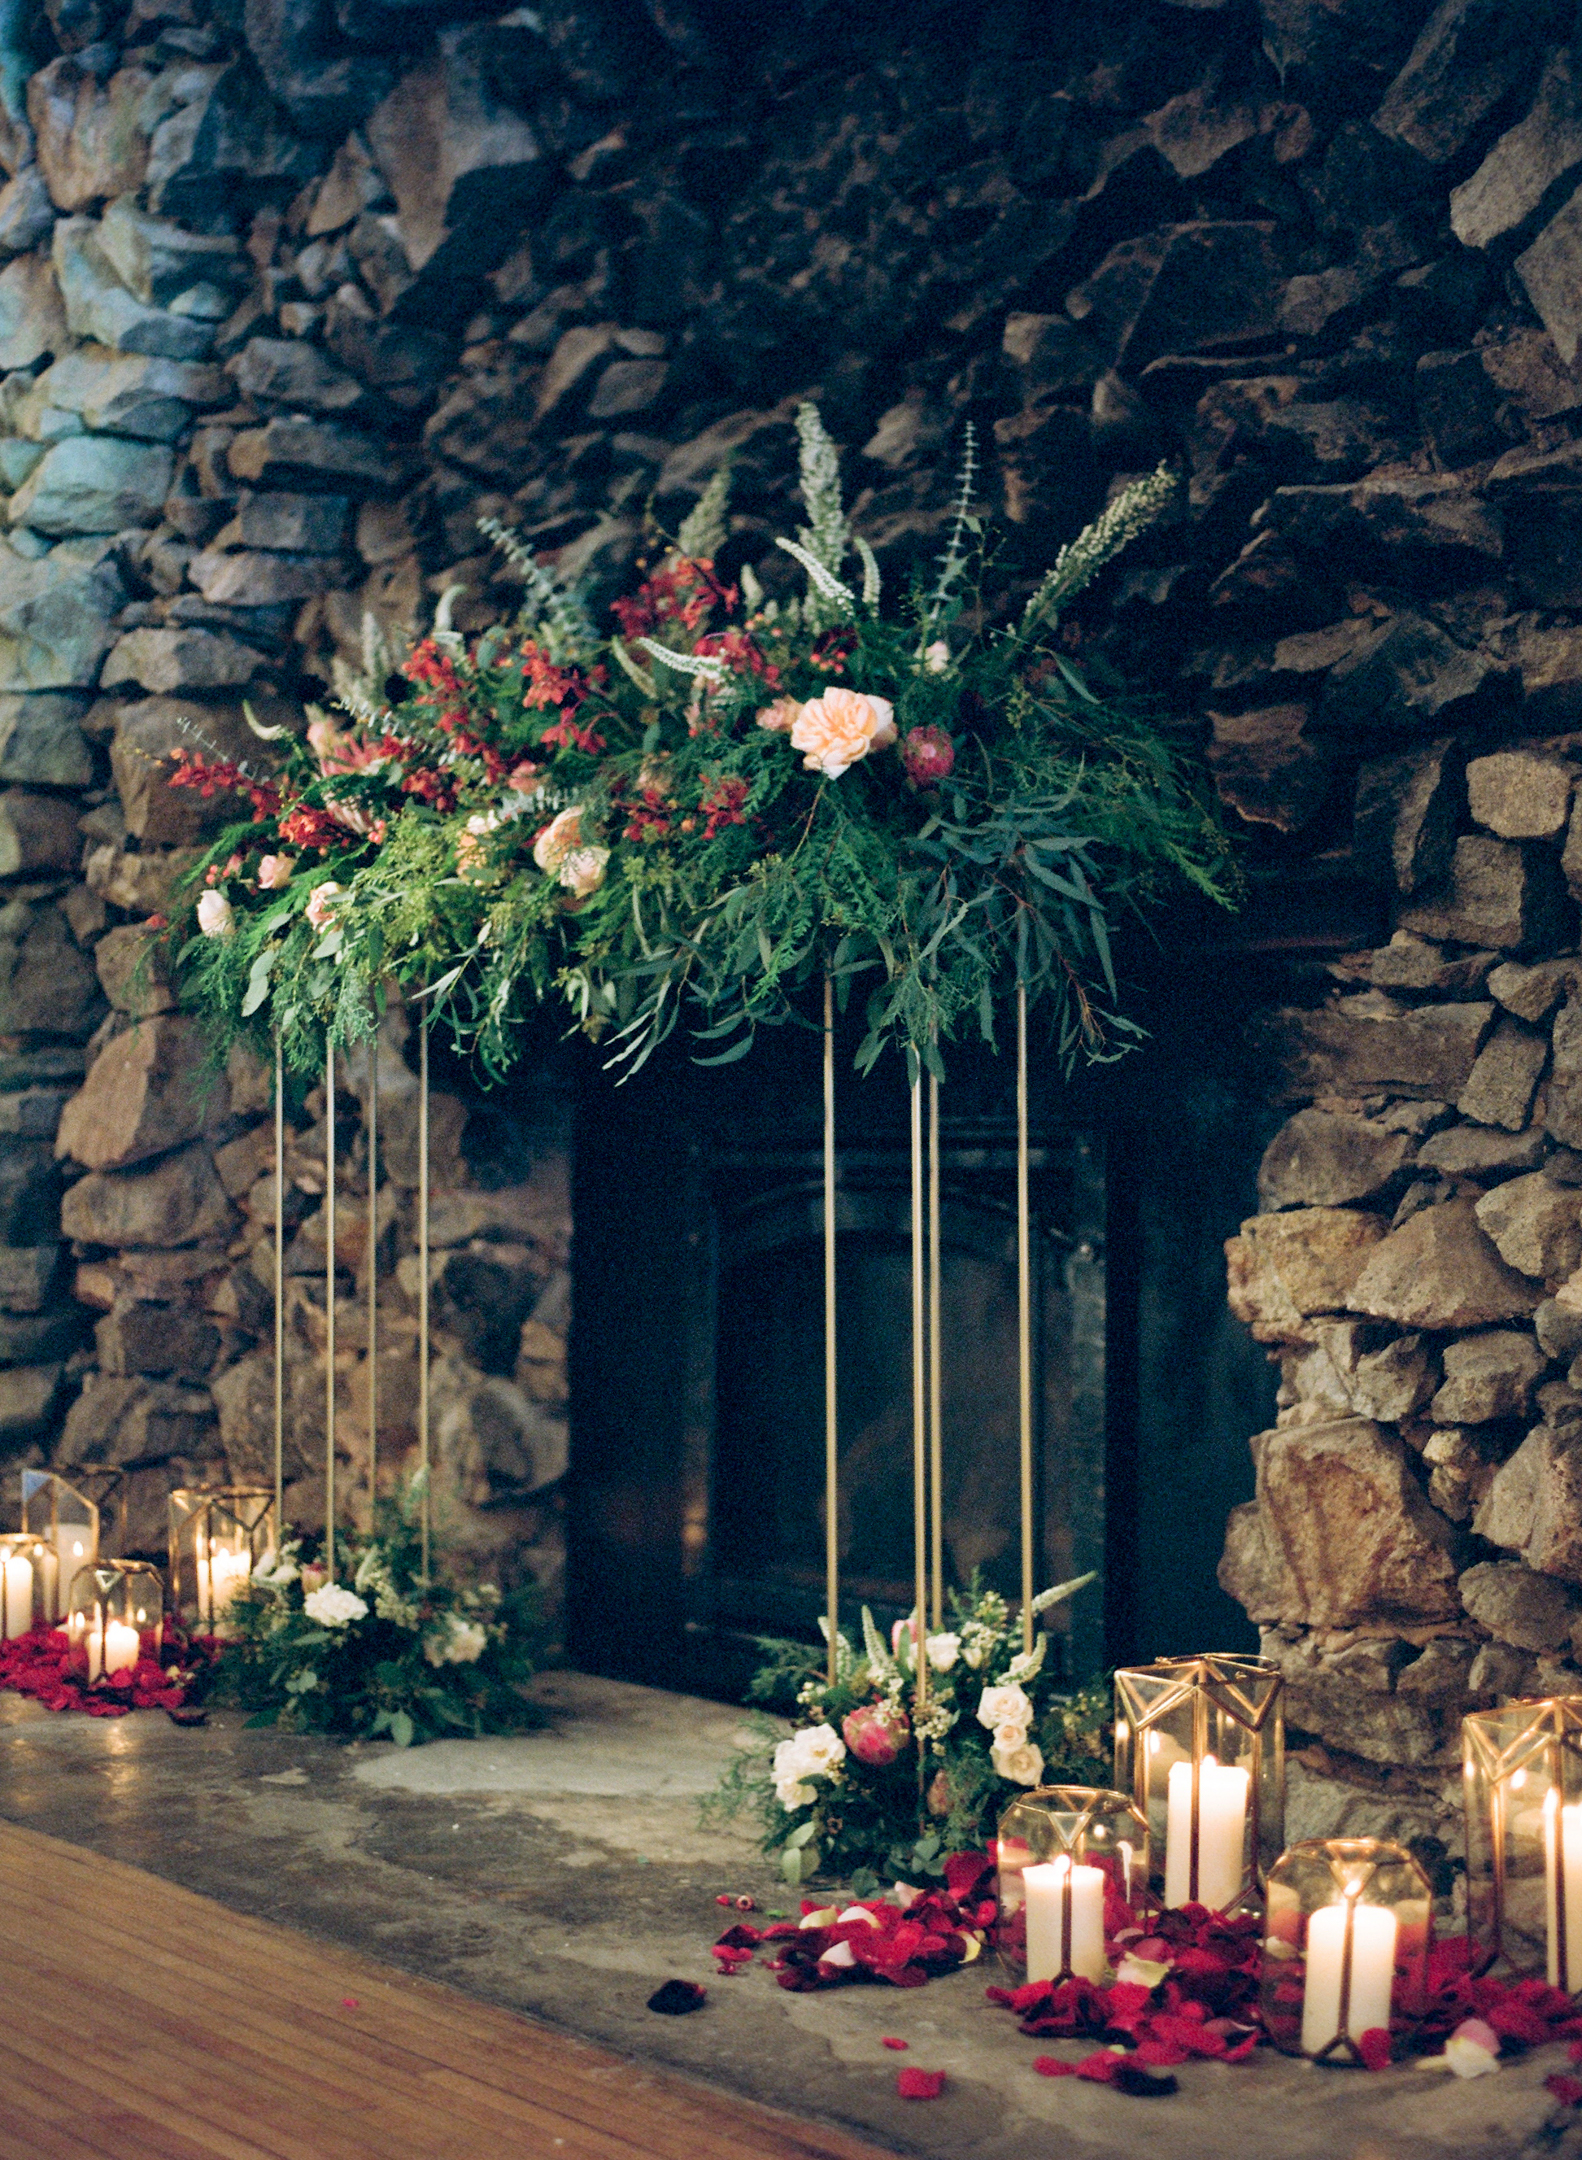 Grand fireplace floral arbor at Rothschild Pavilion winter wedding